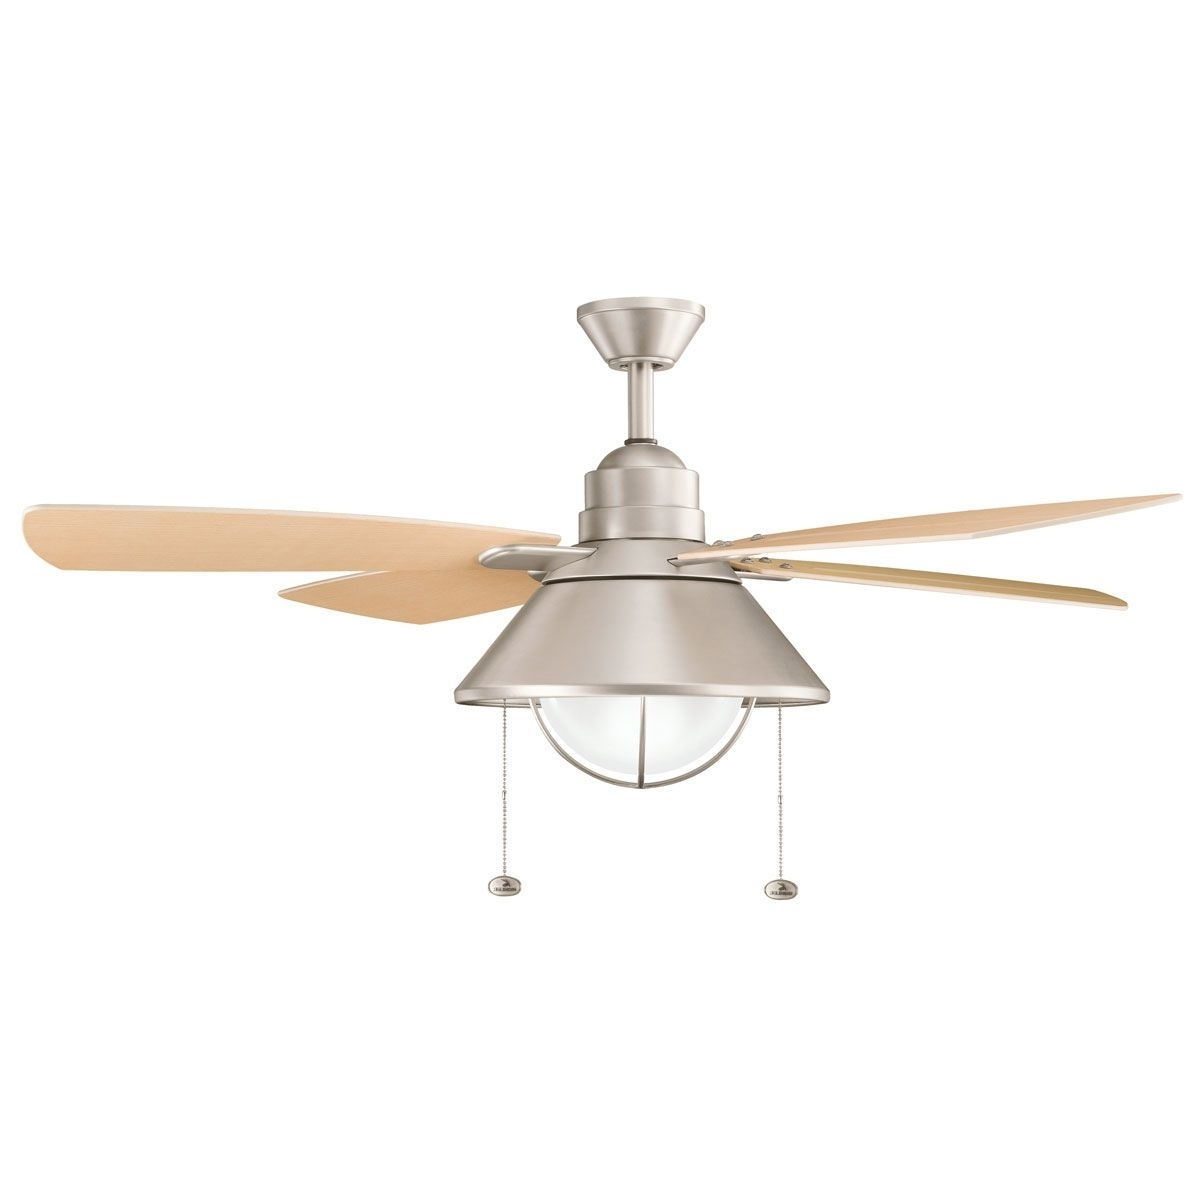 Nickel Outdoor Ceiling Fans Intended For Newest Kichler Fans Seaside Ceiling Fan In Brushed Nickel (View 11 of 20)